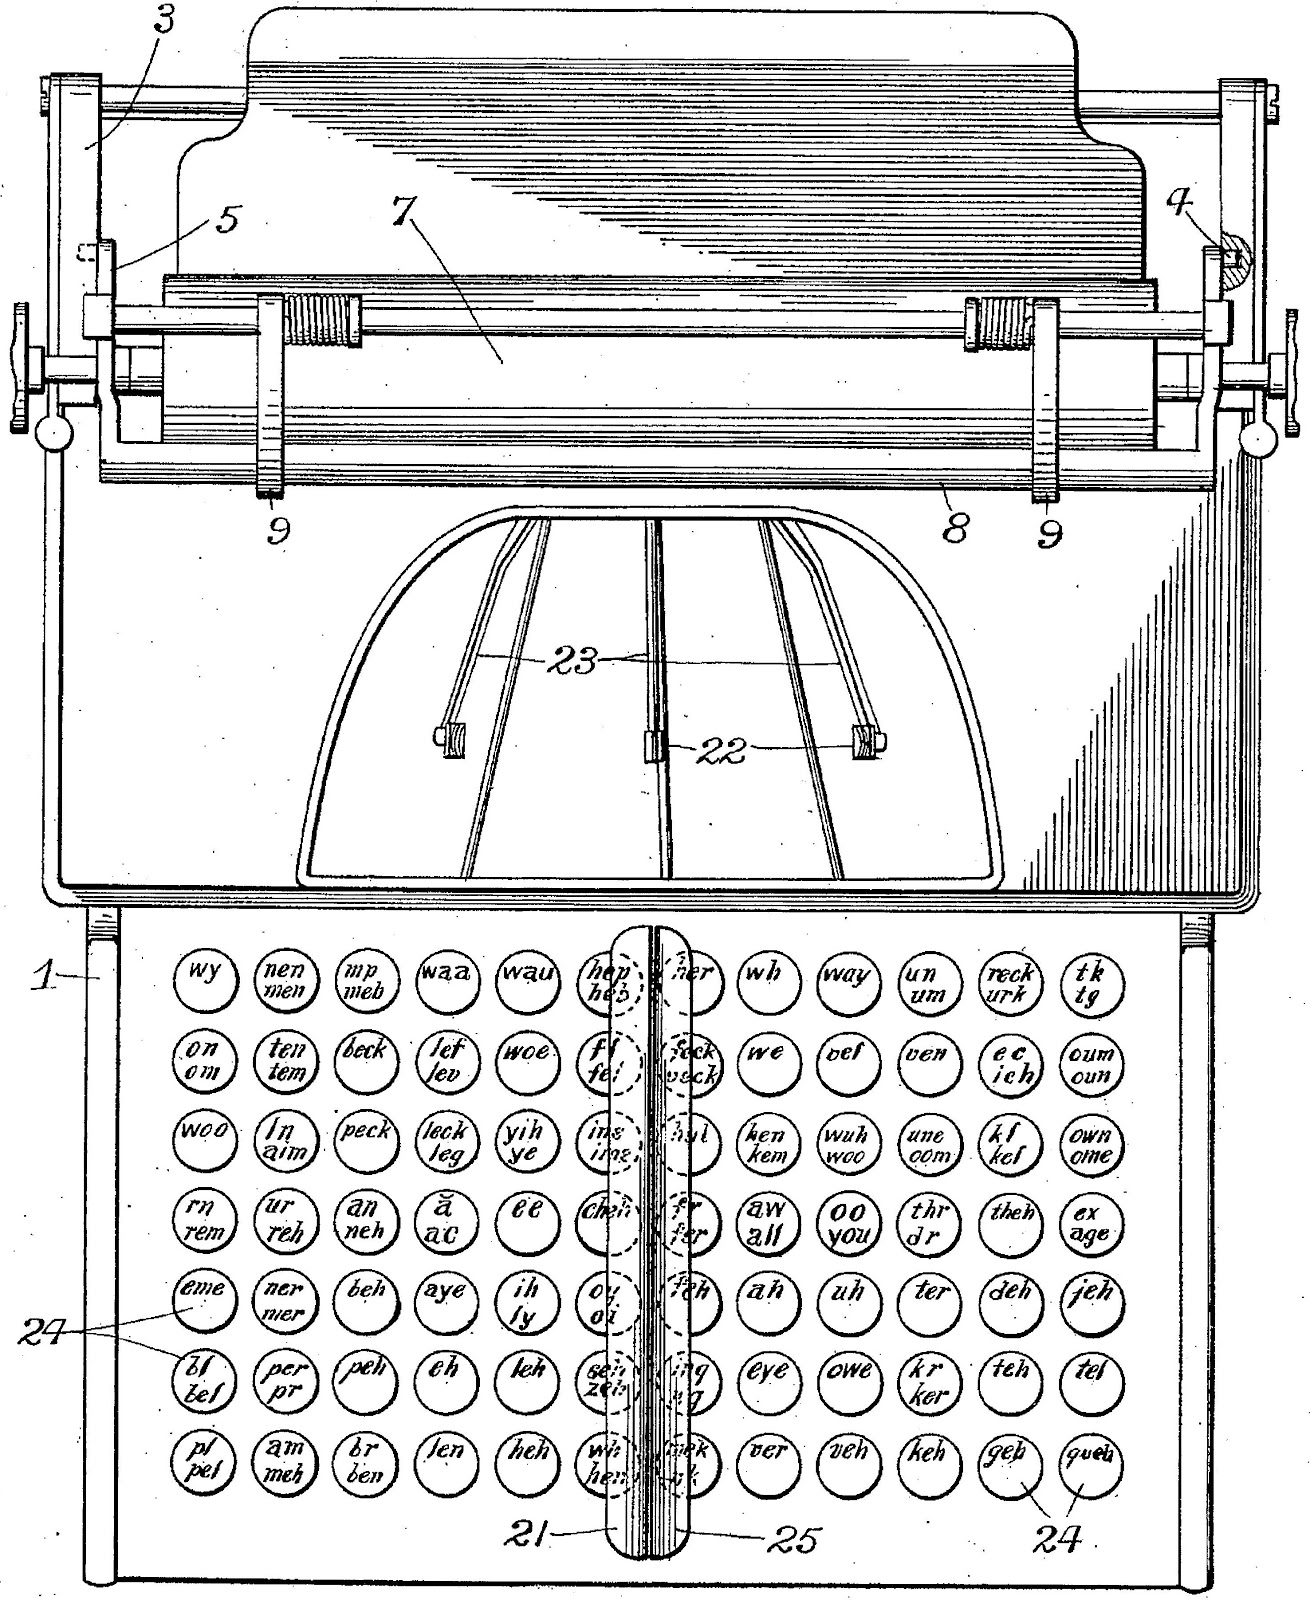 Oztypewriter On This Day In Typewriter History Frank Clarks Clark Tk Wiring Diagram Was The Son Of An Ohio Born Lawyer And Judge Who Had Ridden Judicial Circuit Kansas Territory Even Before It Became 34th State